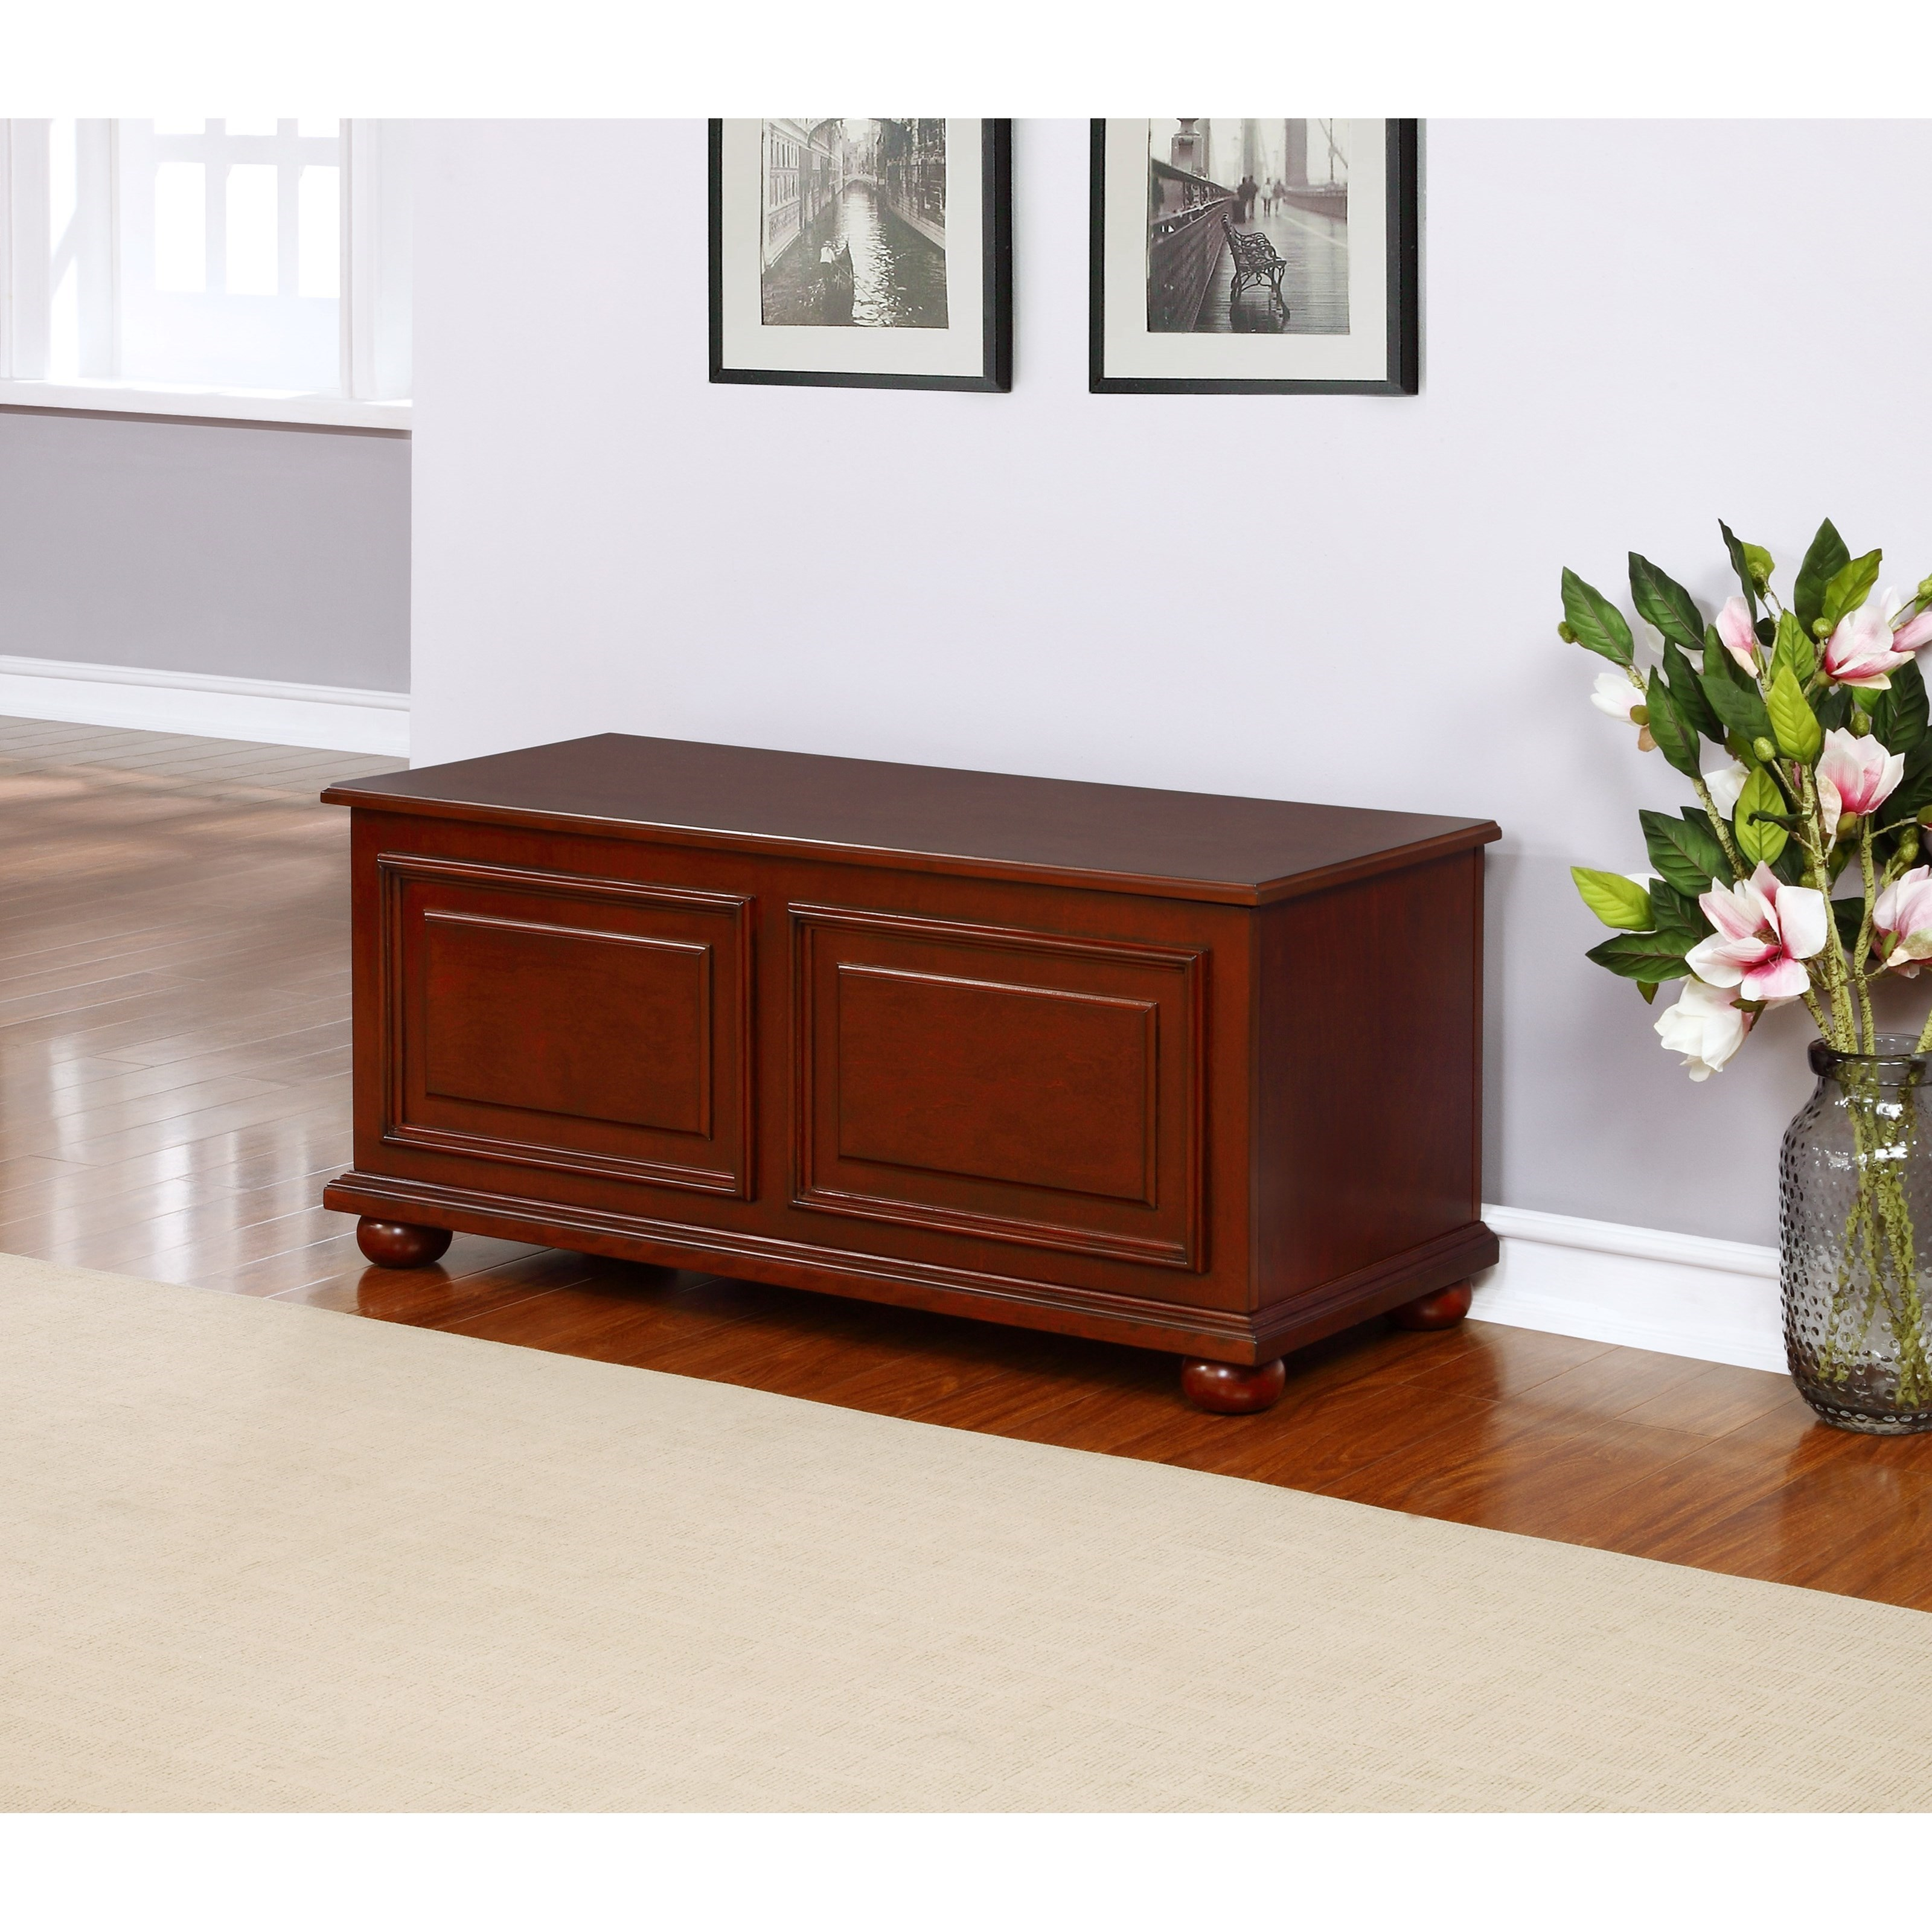 Accent Furniture Cedar Chest by Powell at A1 Furniture & Mattress